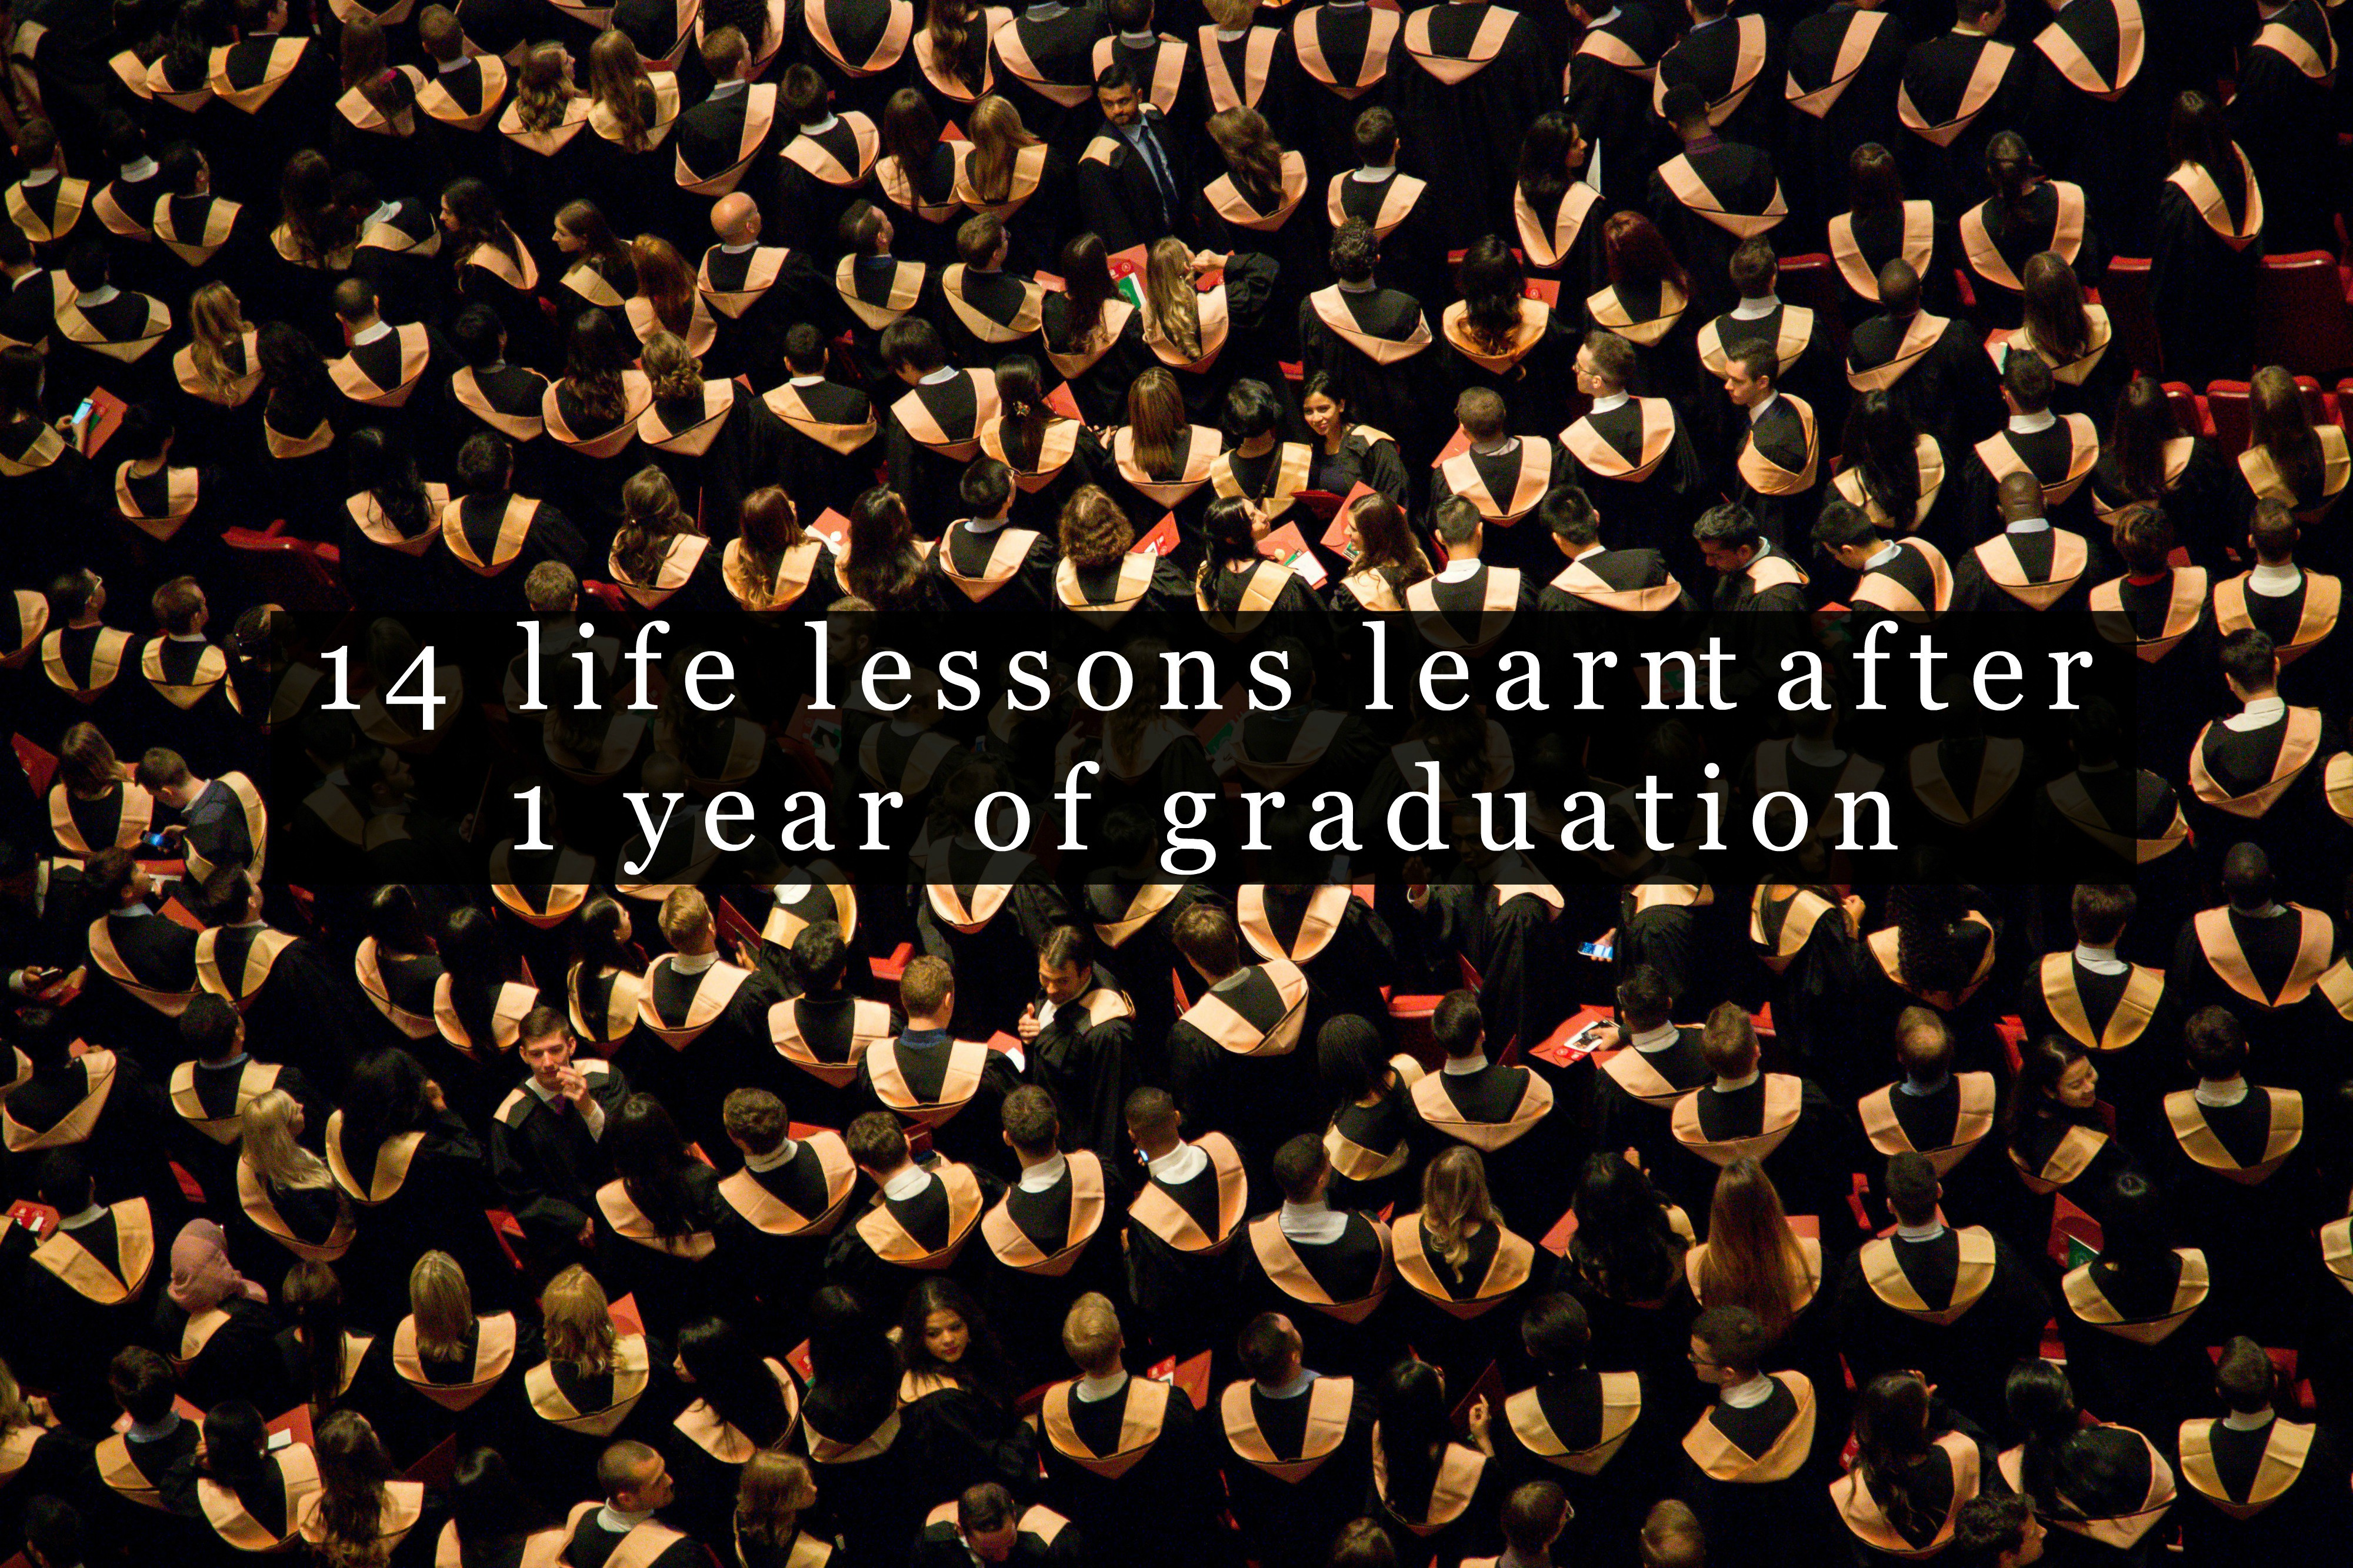 14 life lessons learnt after 1 year of graduation - cover